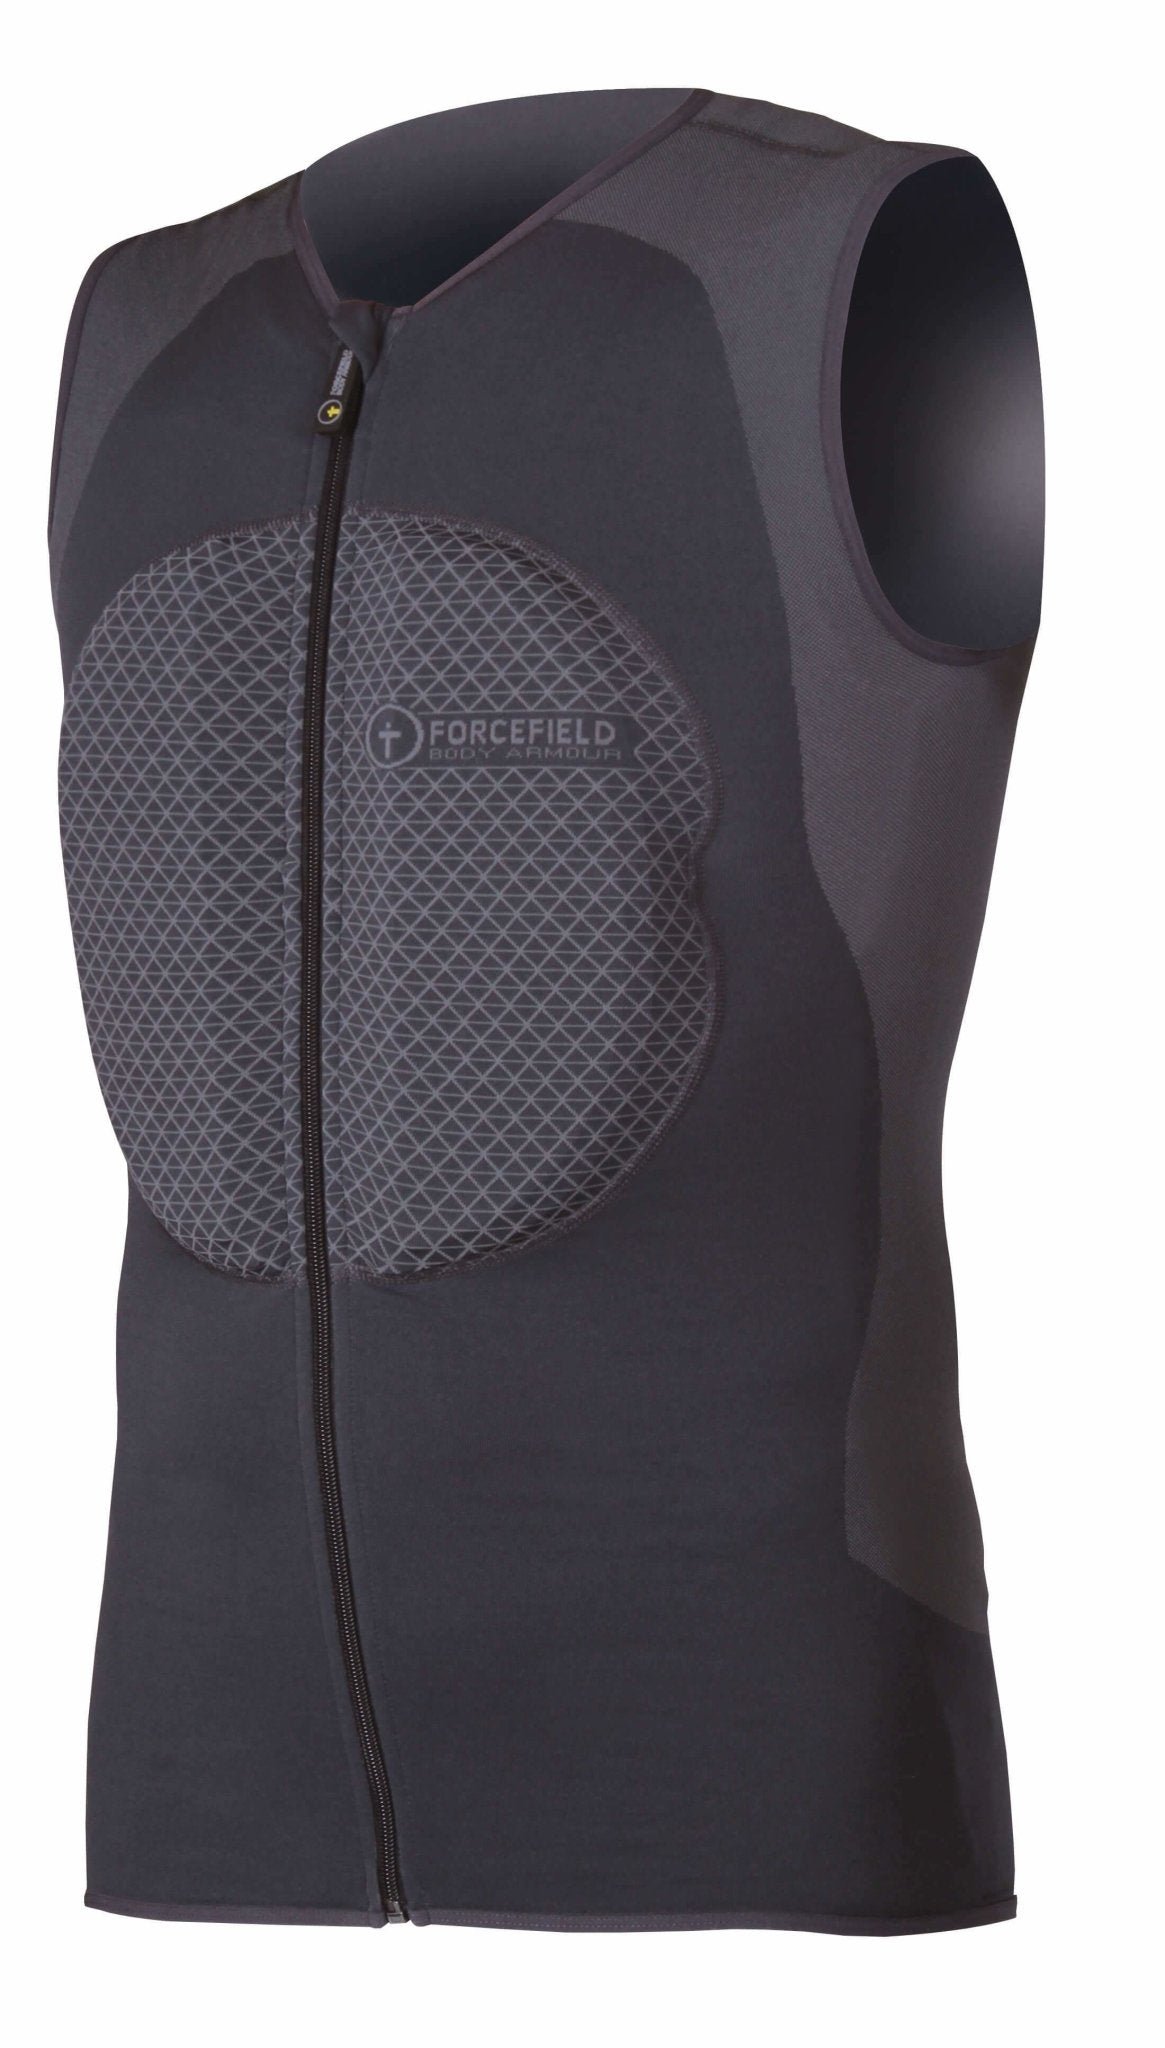 Forcefield-Forcefield Pro Vest XV - Action Athlete Supply